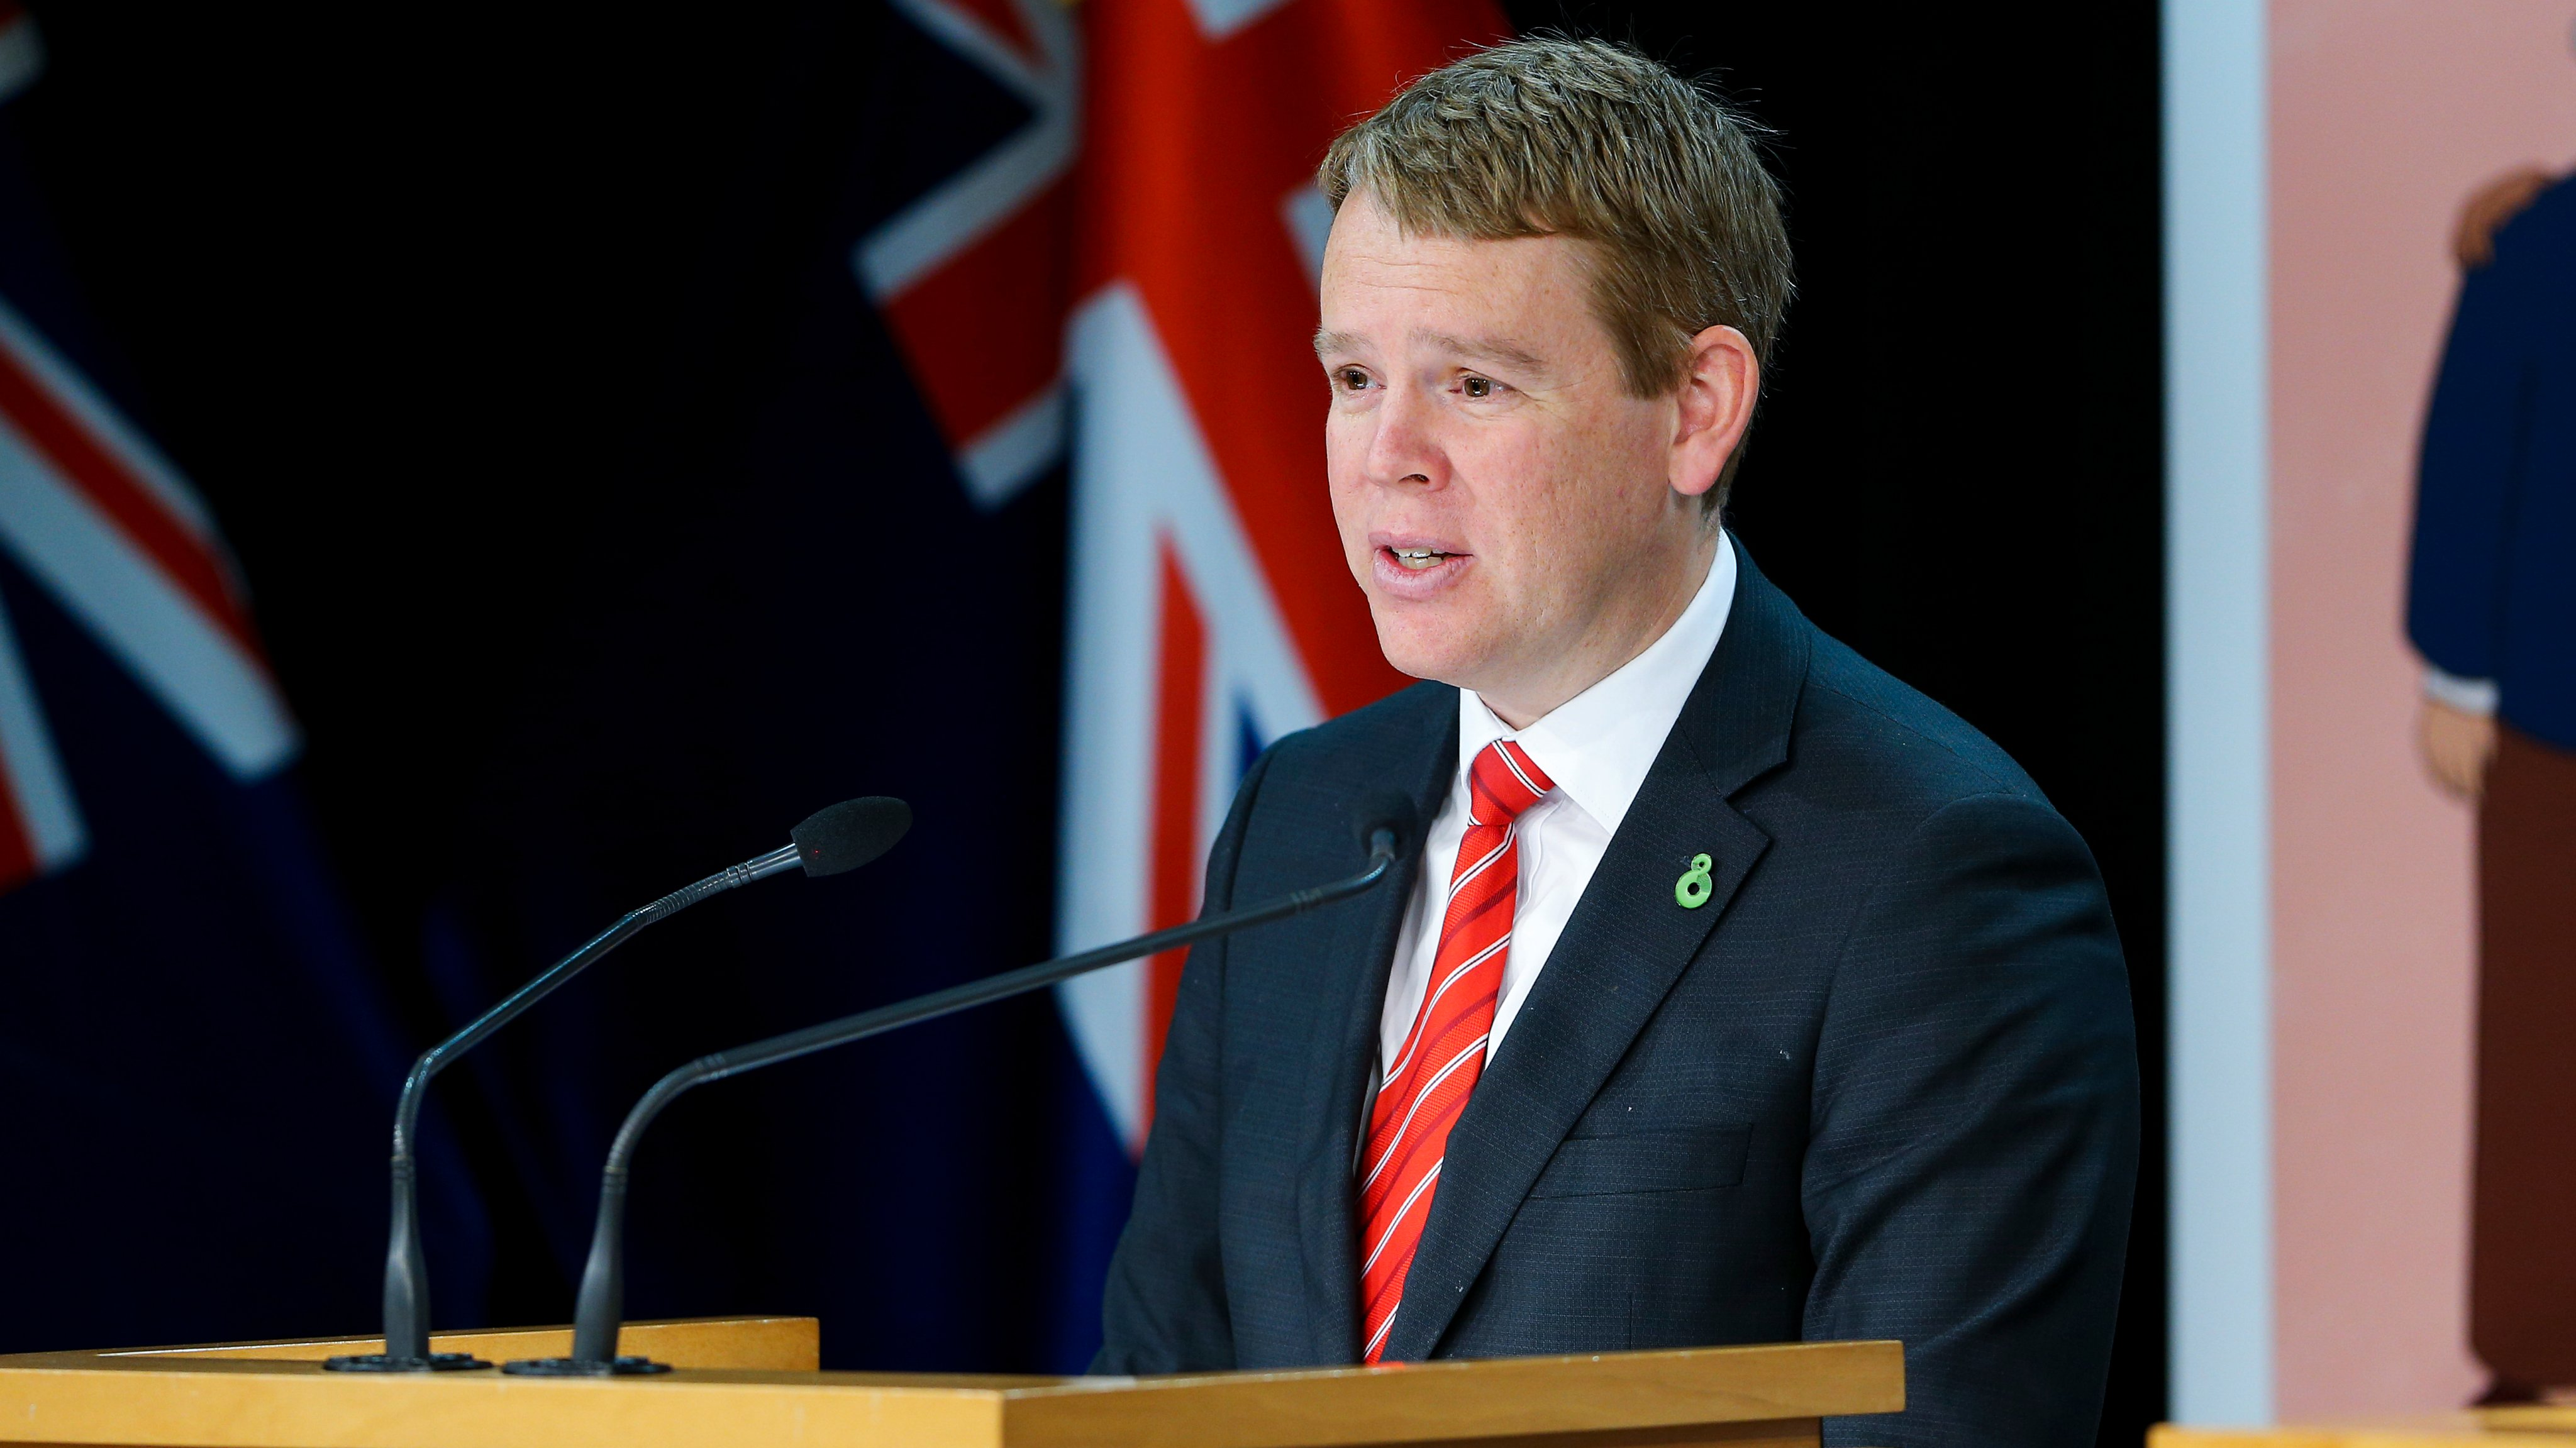 NZ Government Ministers Give COVID-19 Update